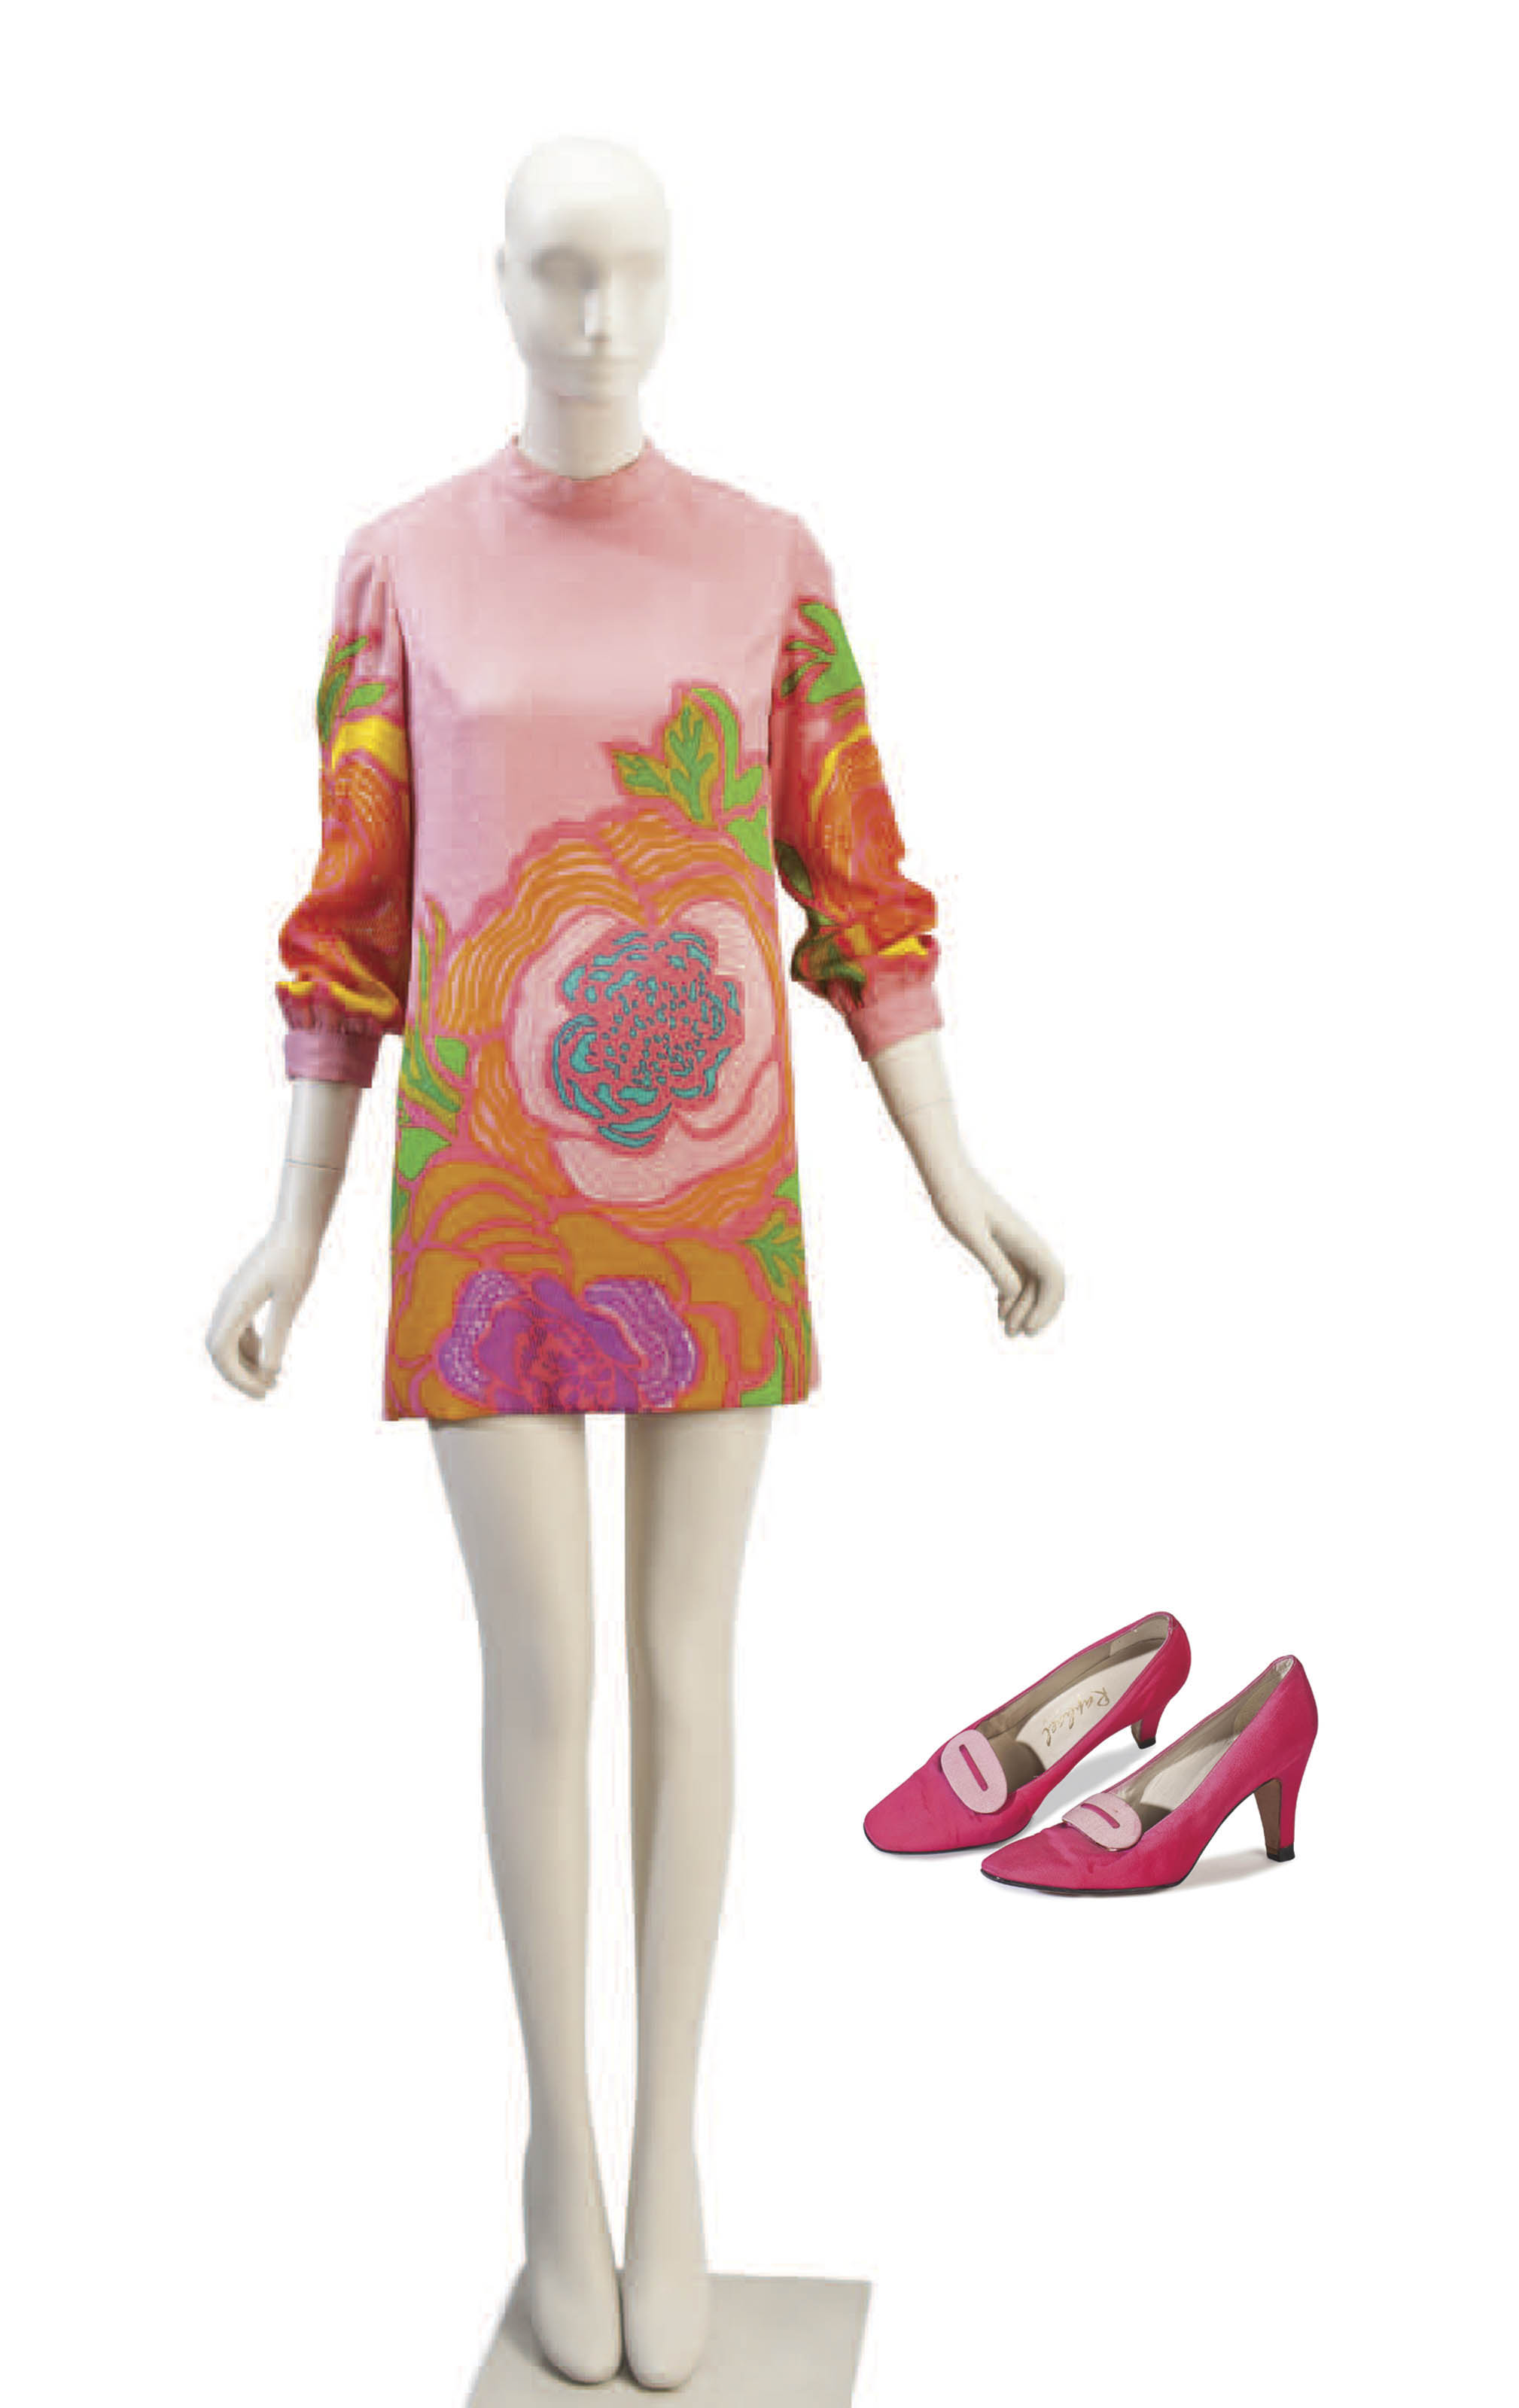 A BILL BLASS PINK TEXTURED SILK AND FLORAL PRINT DRESS WITH A PAIR OF DYED SILK HIGH-HEEL SHOES